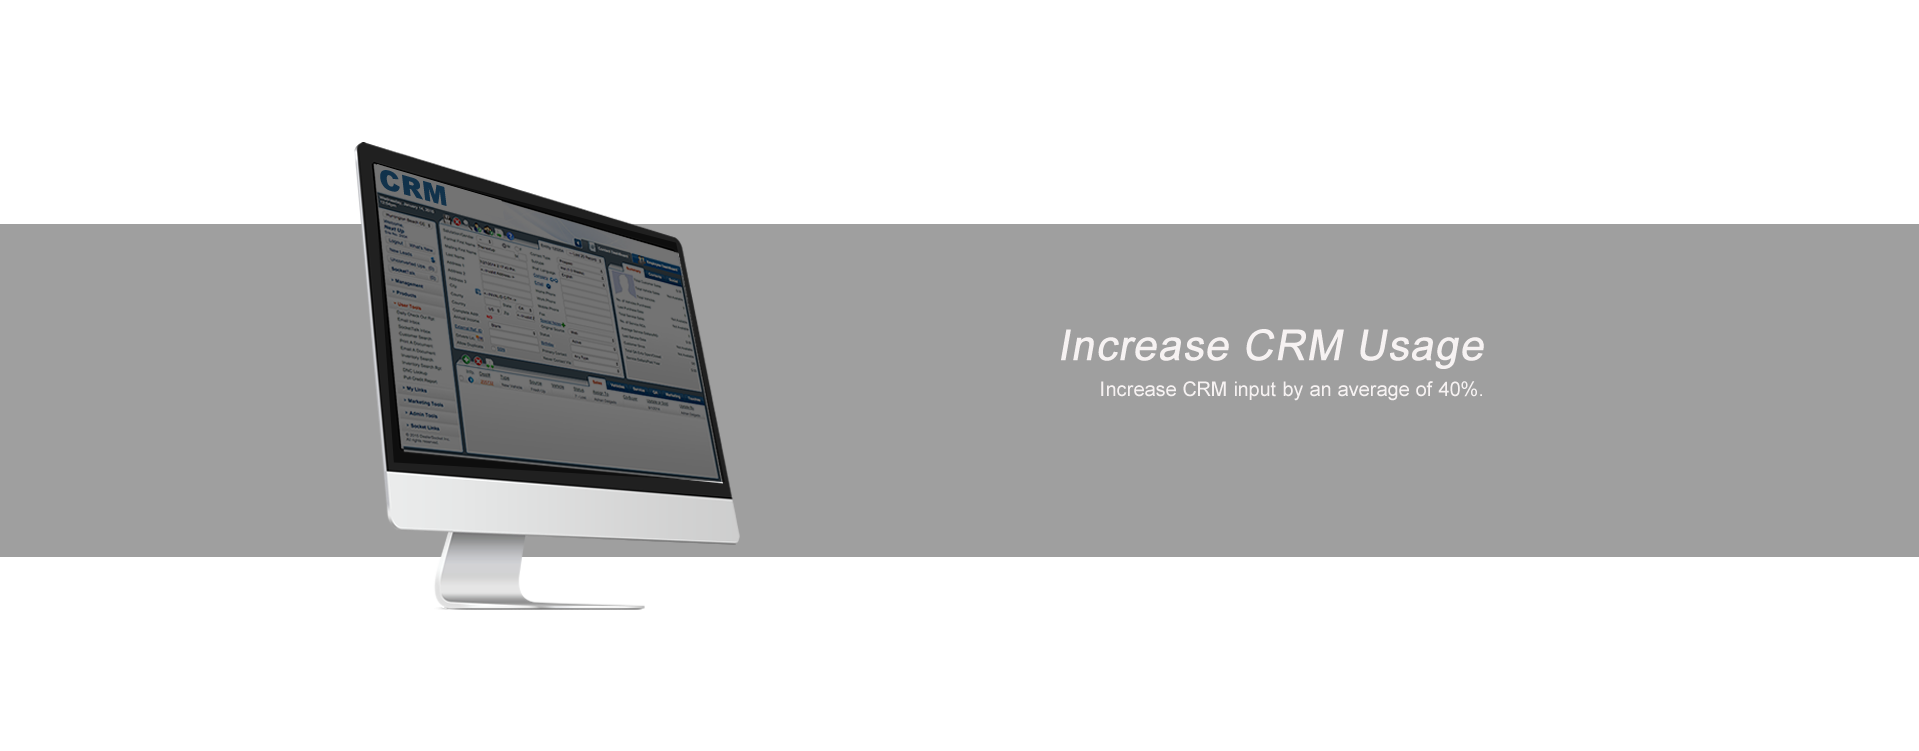 Automotive CRM Usage Increased